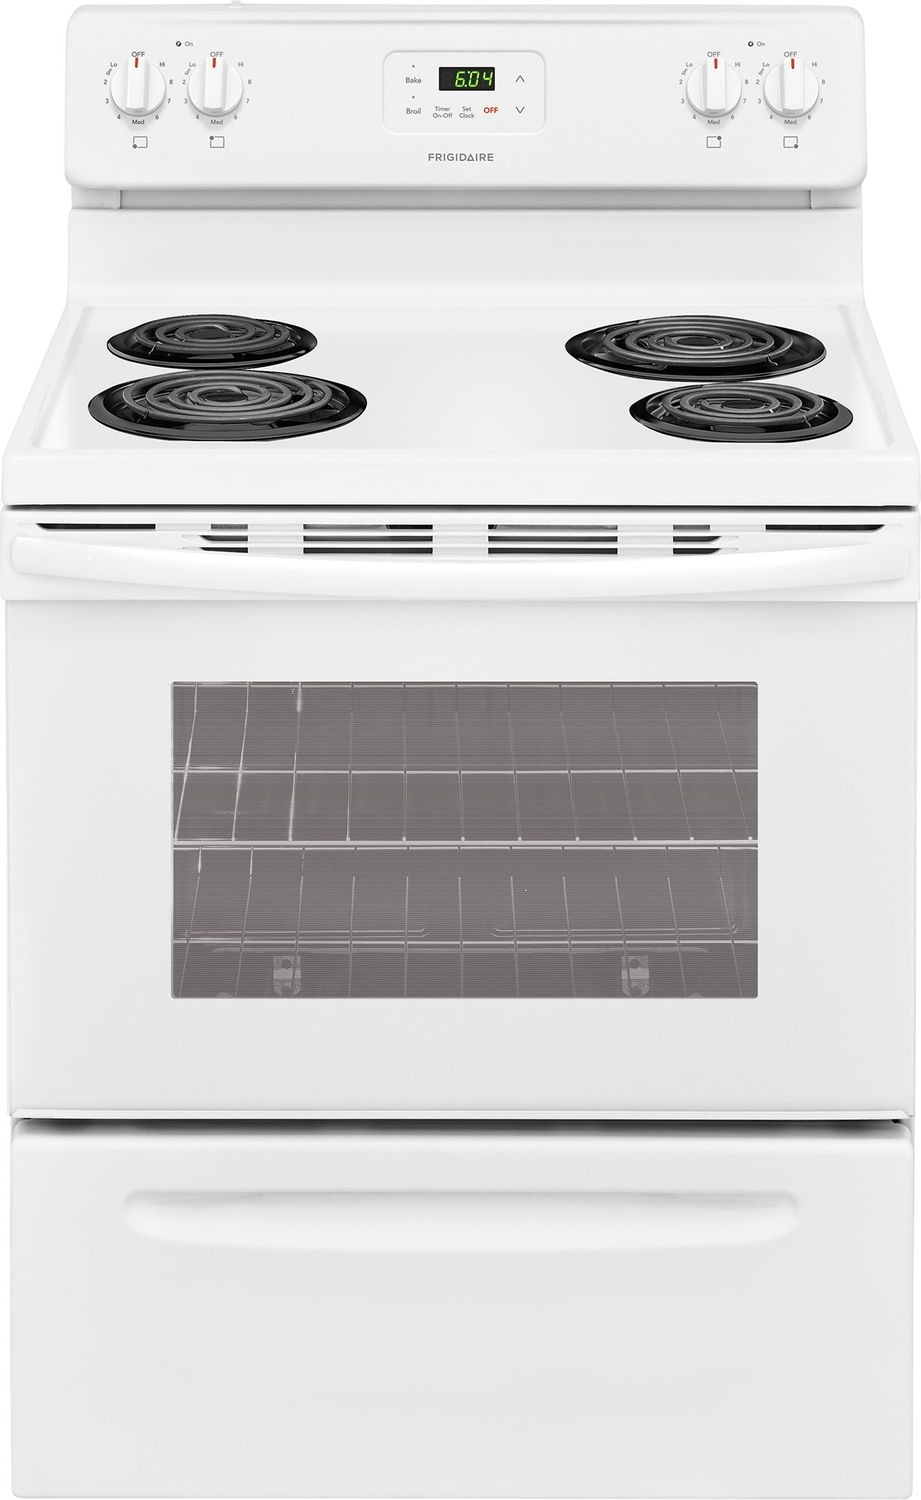 Frigidaire White Freestanding Electric Range (4.9 Cu. Ft.) - CFEF3012TW